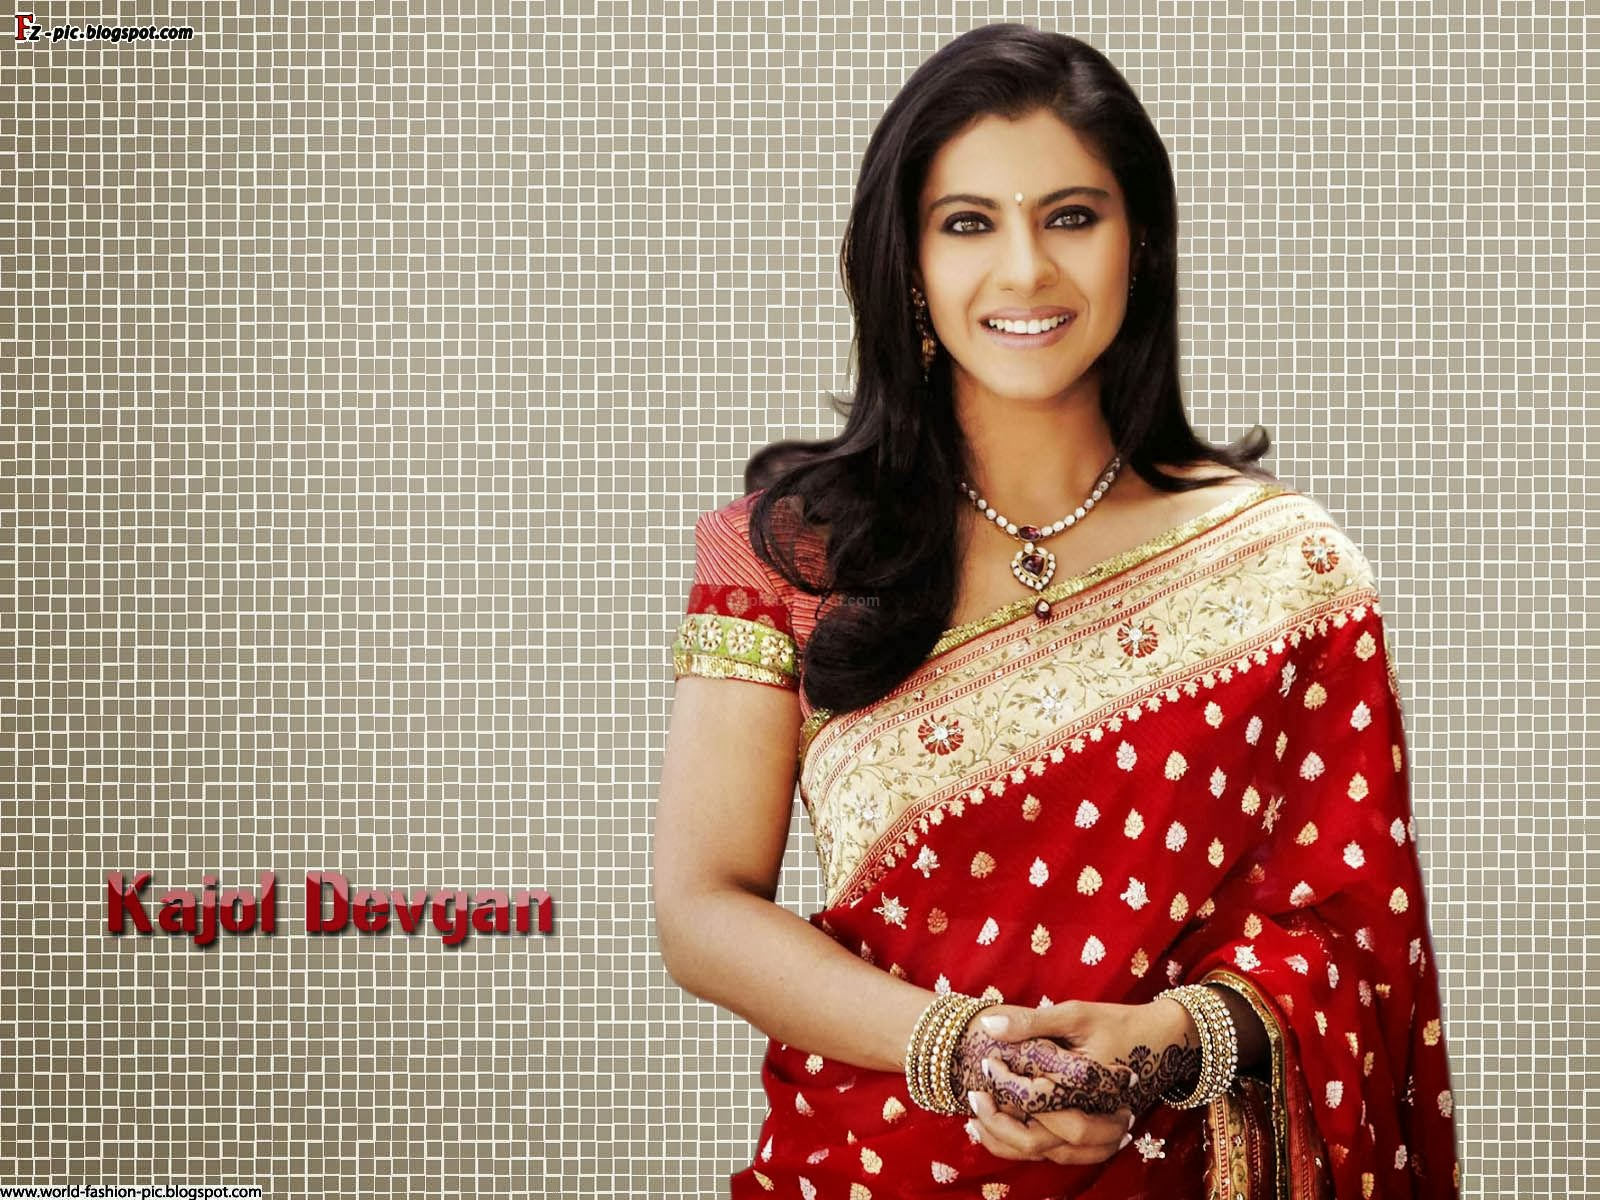 Indian fashion: Bollywood Actress Kajol